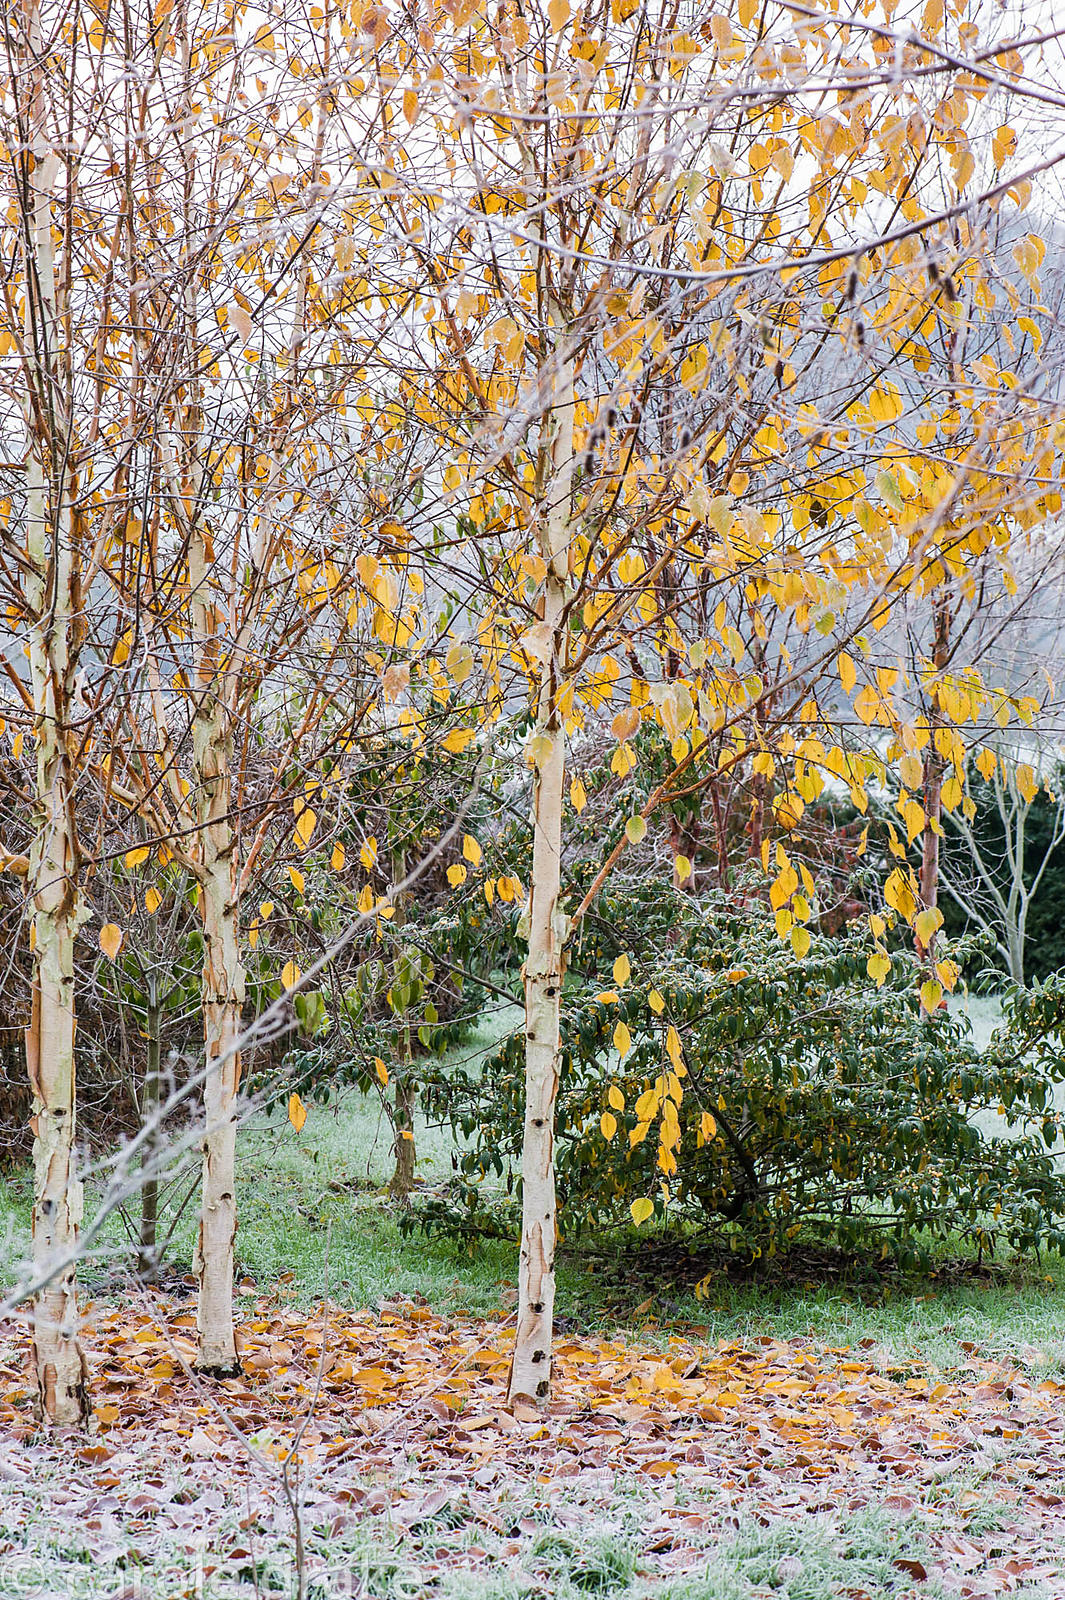 Betula utilis var. jacquemontii 'Grayswood Ghost' hanging on to its yellow leaves.